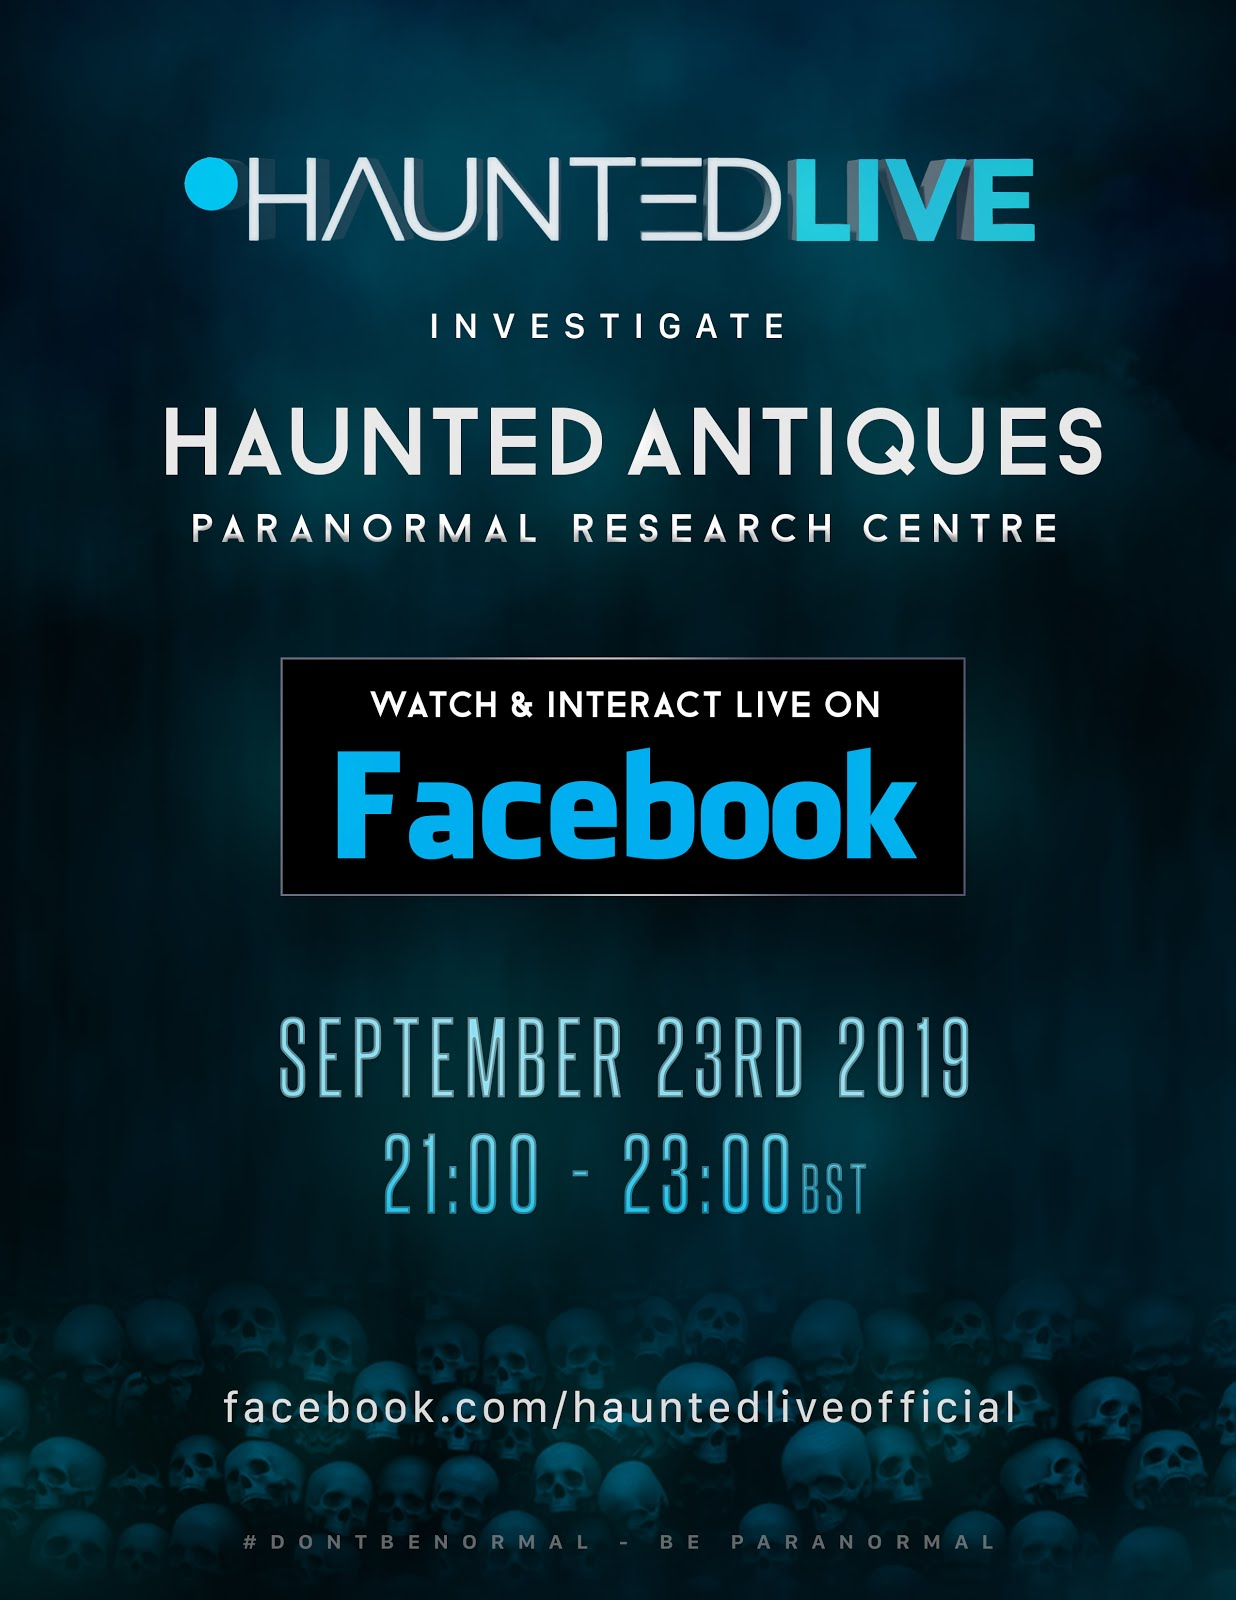 NEXT FACEBOOK LIVE EVENT: